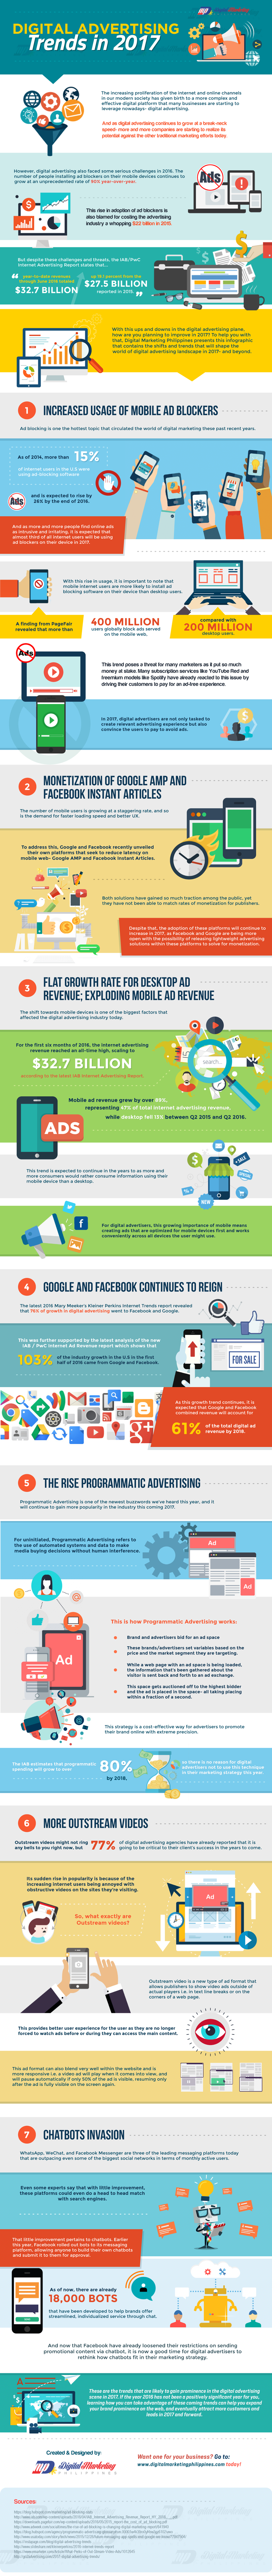 Digital Advertising Trends - Infographic